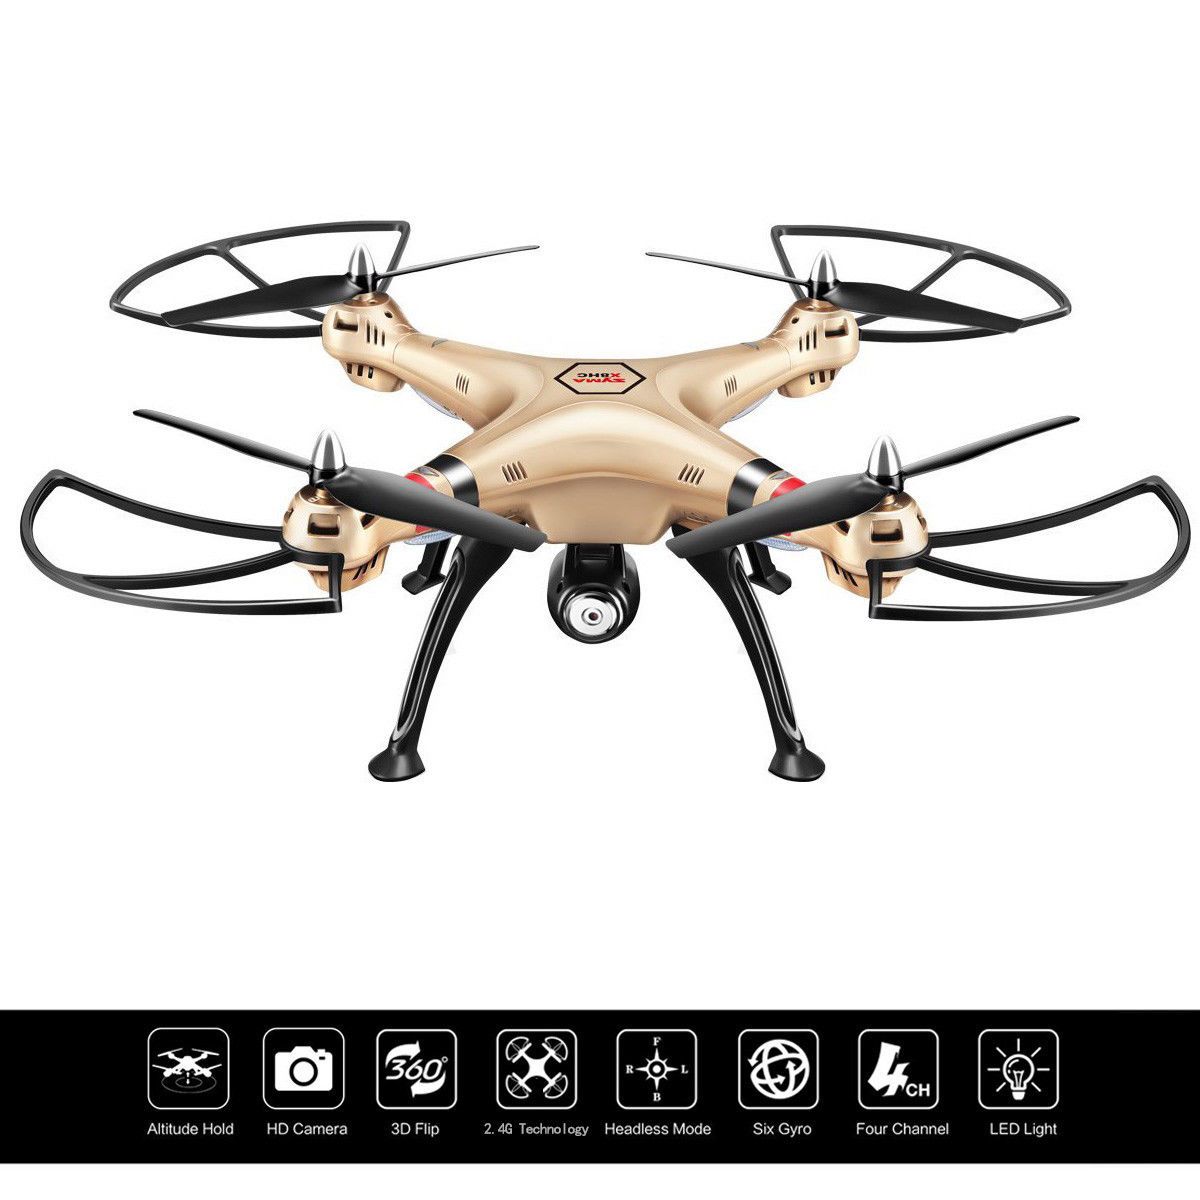 Costway Syma X8HC 2.4G 4CH 6-Axis Gyro RC Quadcopter Drone 2MP HD Camera UAV RTF UFO